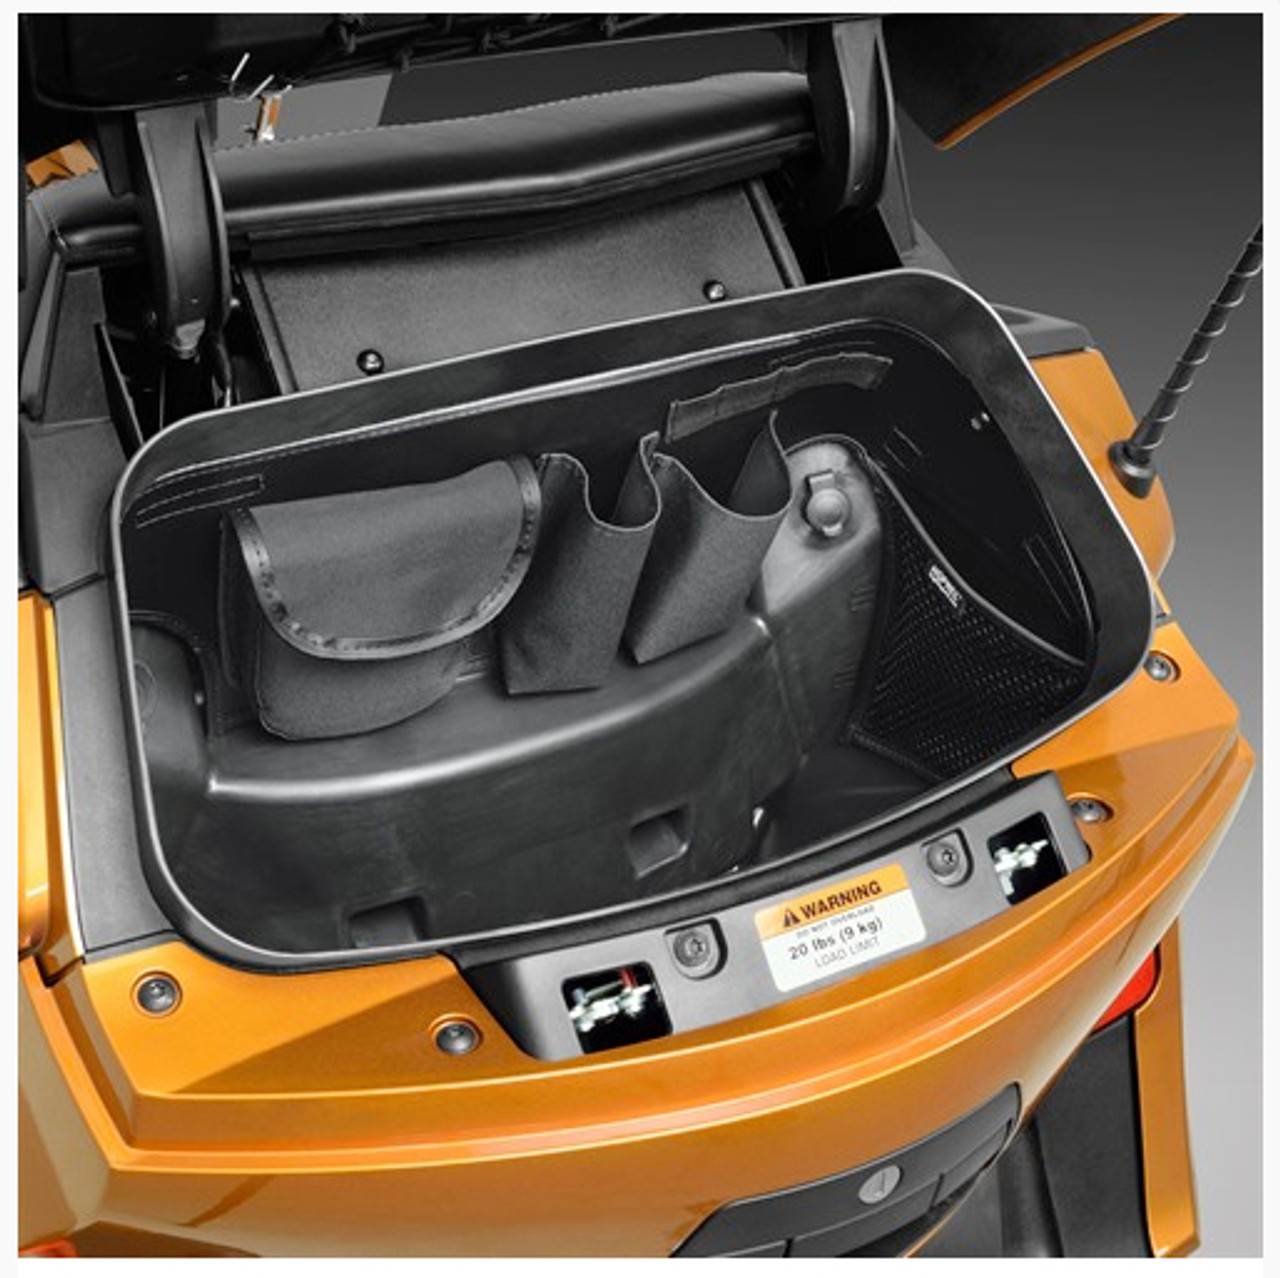 Hopnel, TRUNK ORGANIZER CAN-AM Spyder RT, F3-T (SC-H41-150BK) Lamonster Approved Shown In Can Am Spyder RT Trunk